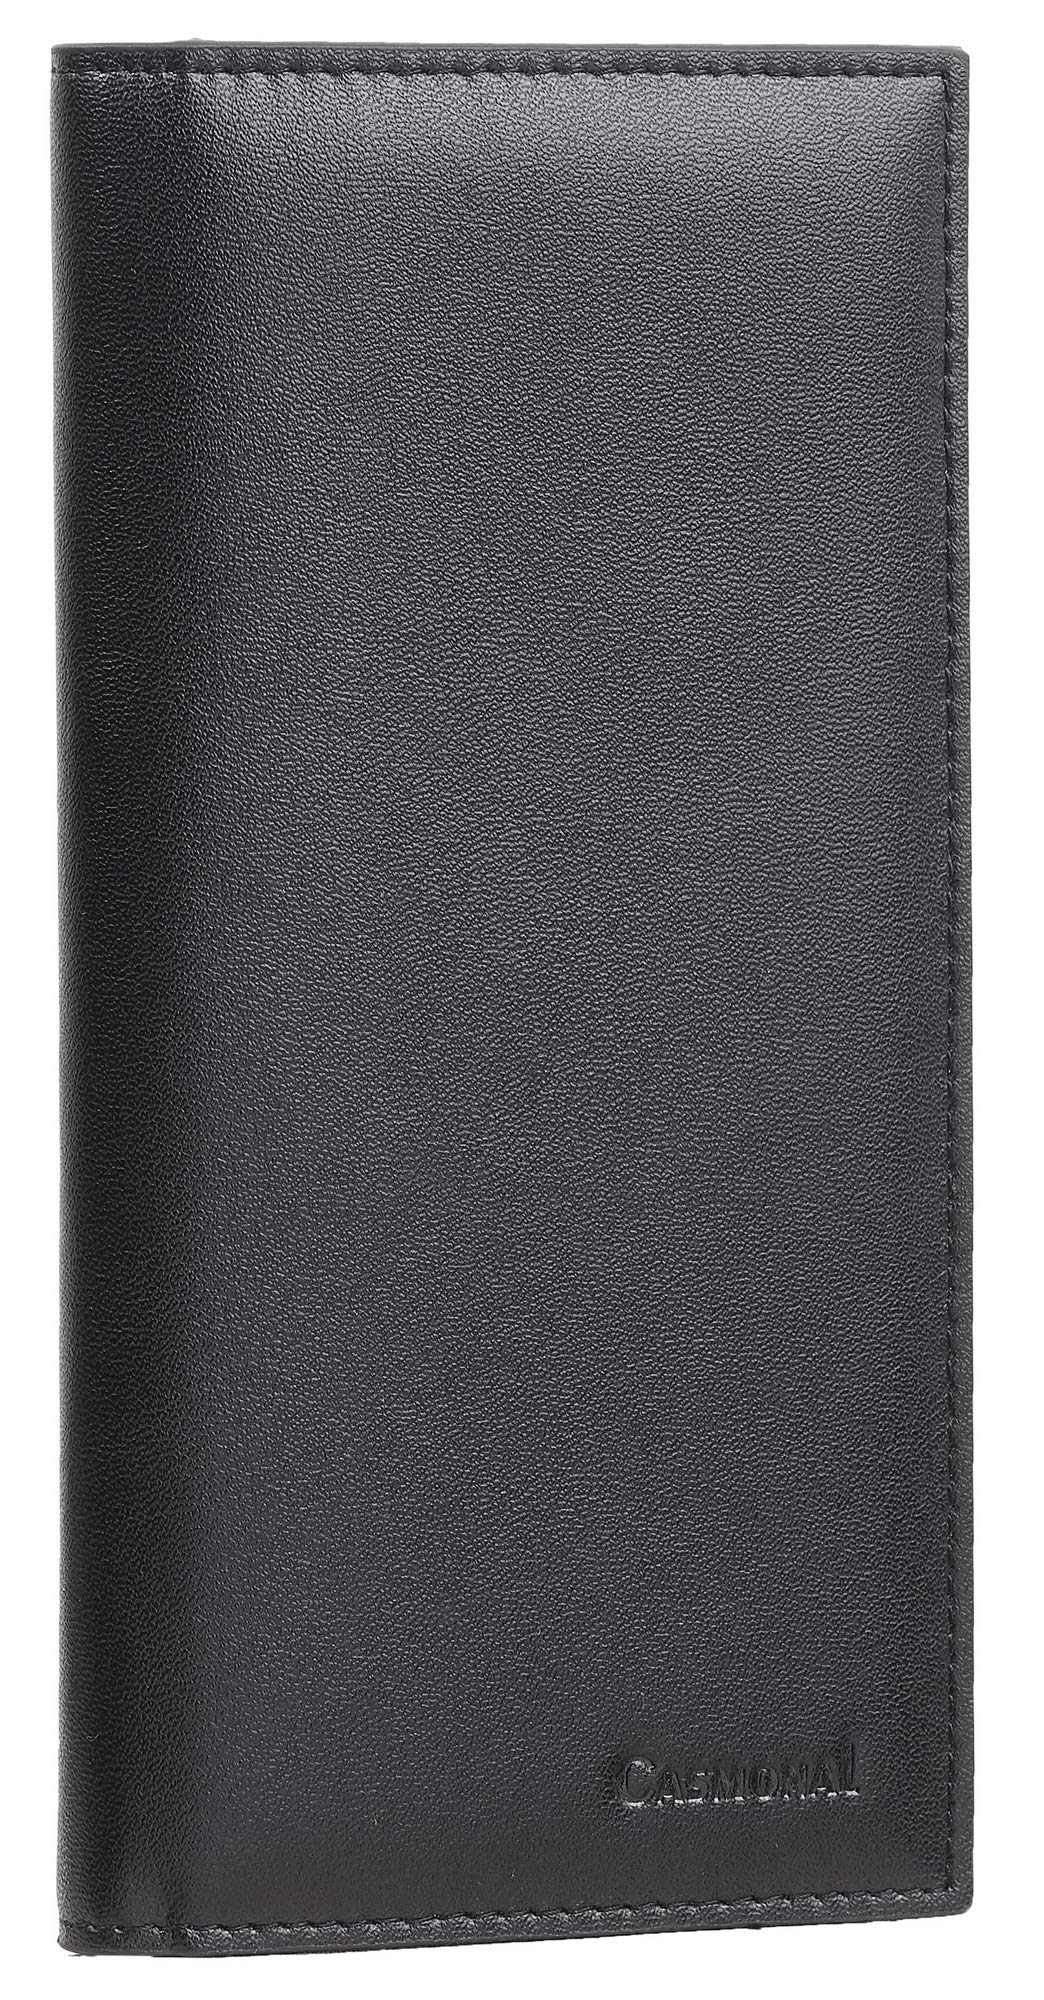 Checkbook Holder Check Book Covers For Duplicate Checks Card Wallet RFID Genuine Leather Checkbook Cover For Women /& Men